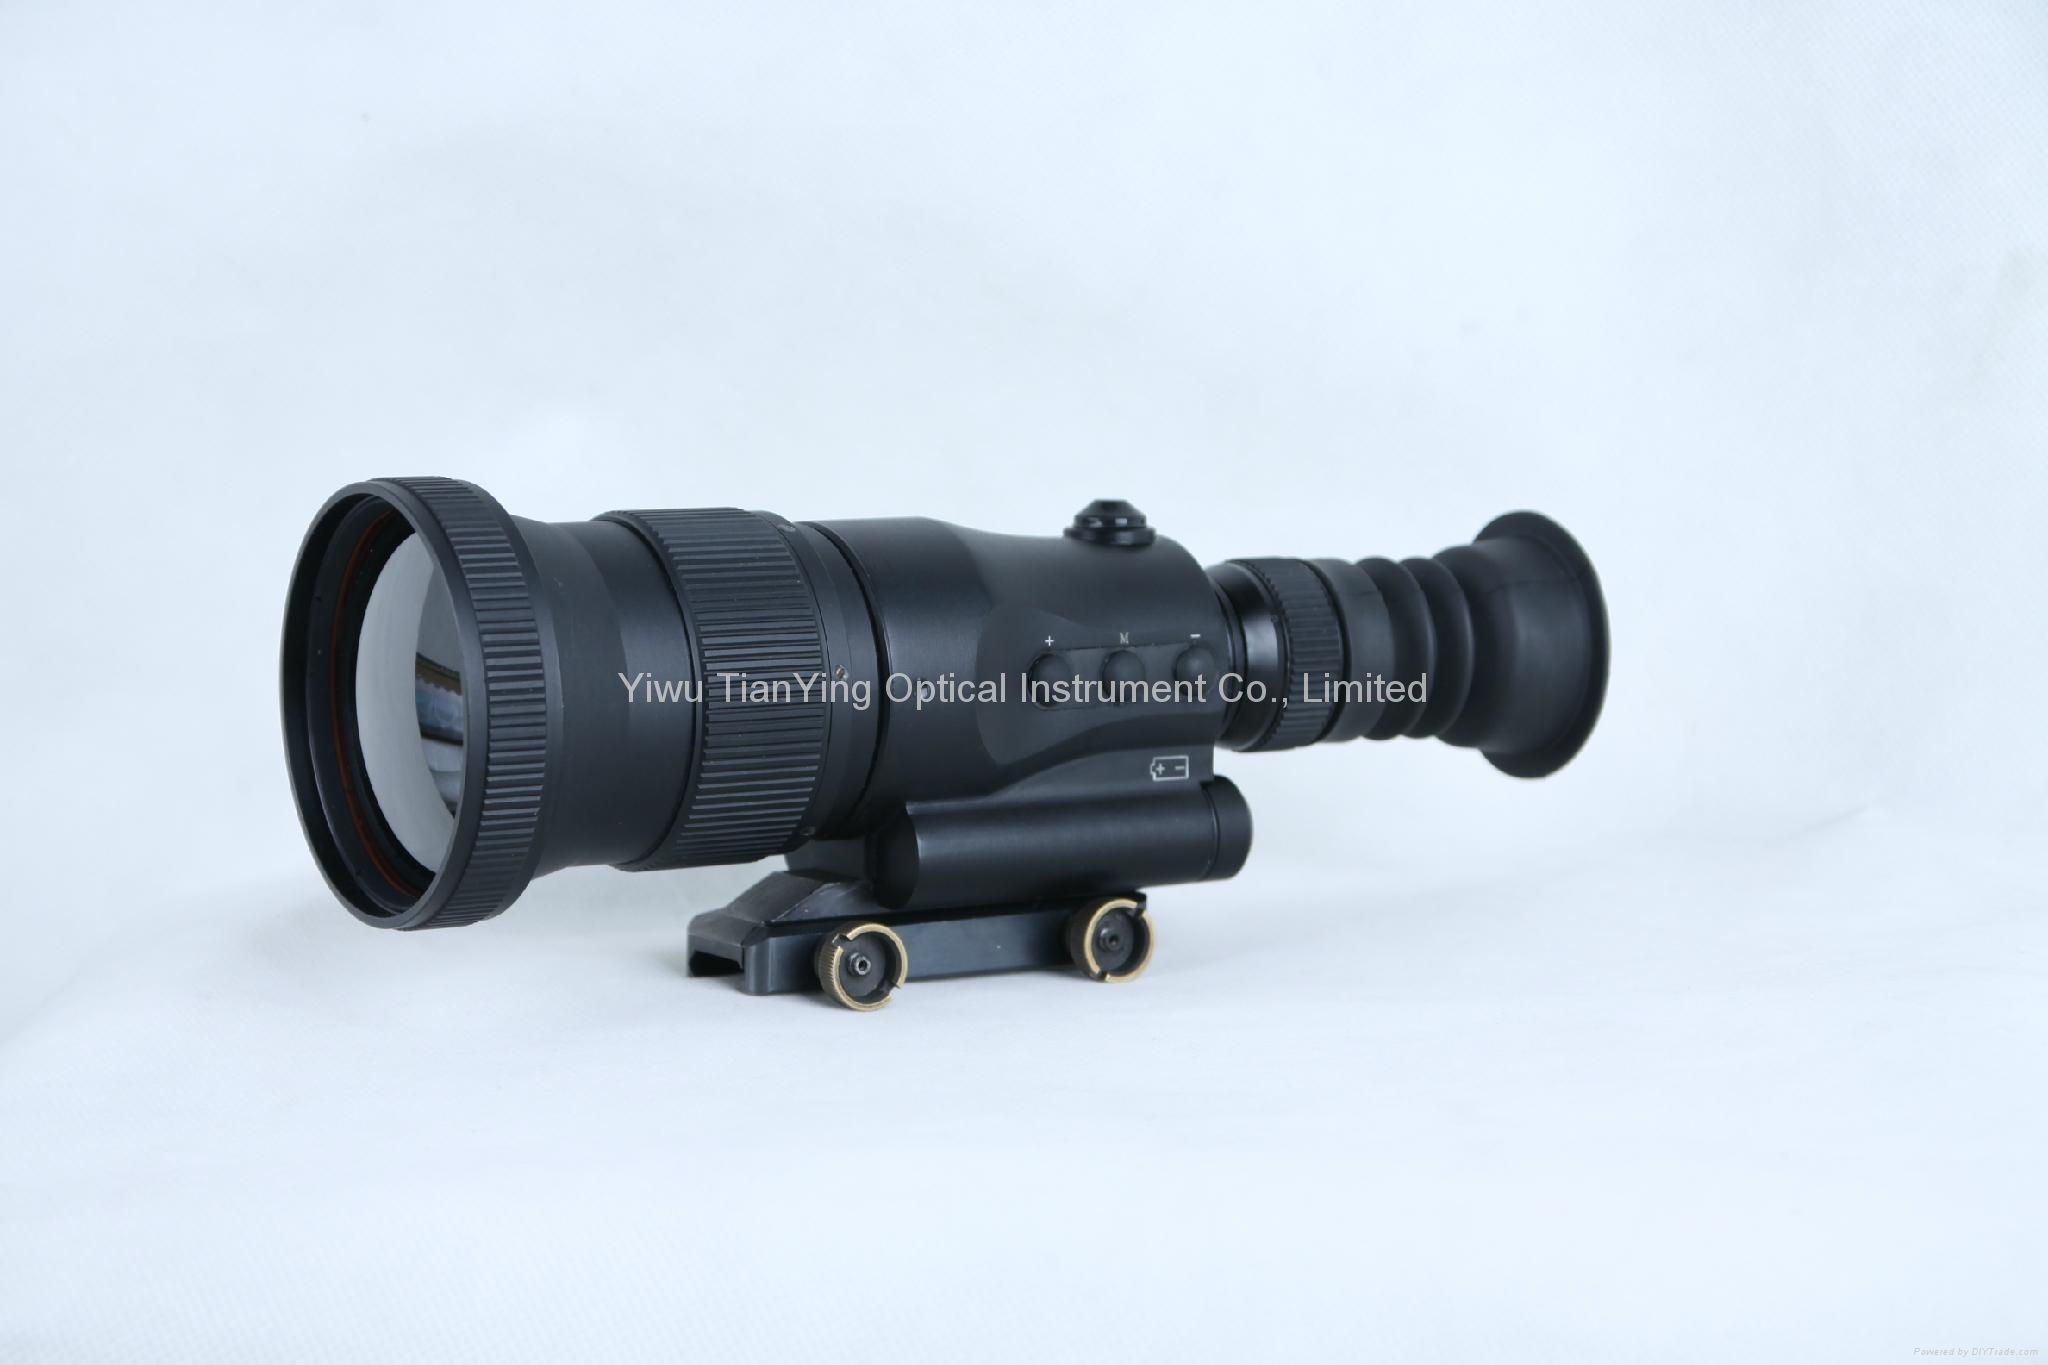 640x480 3x 800m Thermal Imaging Weapon Sights -4